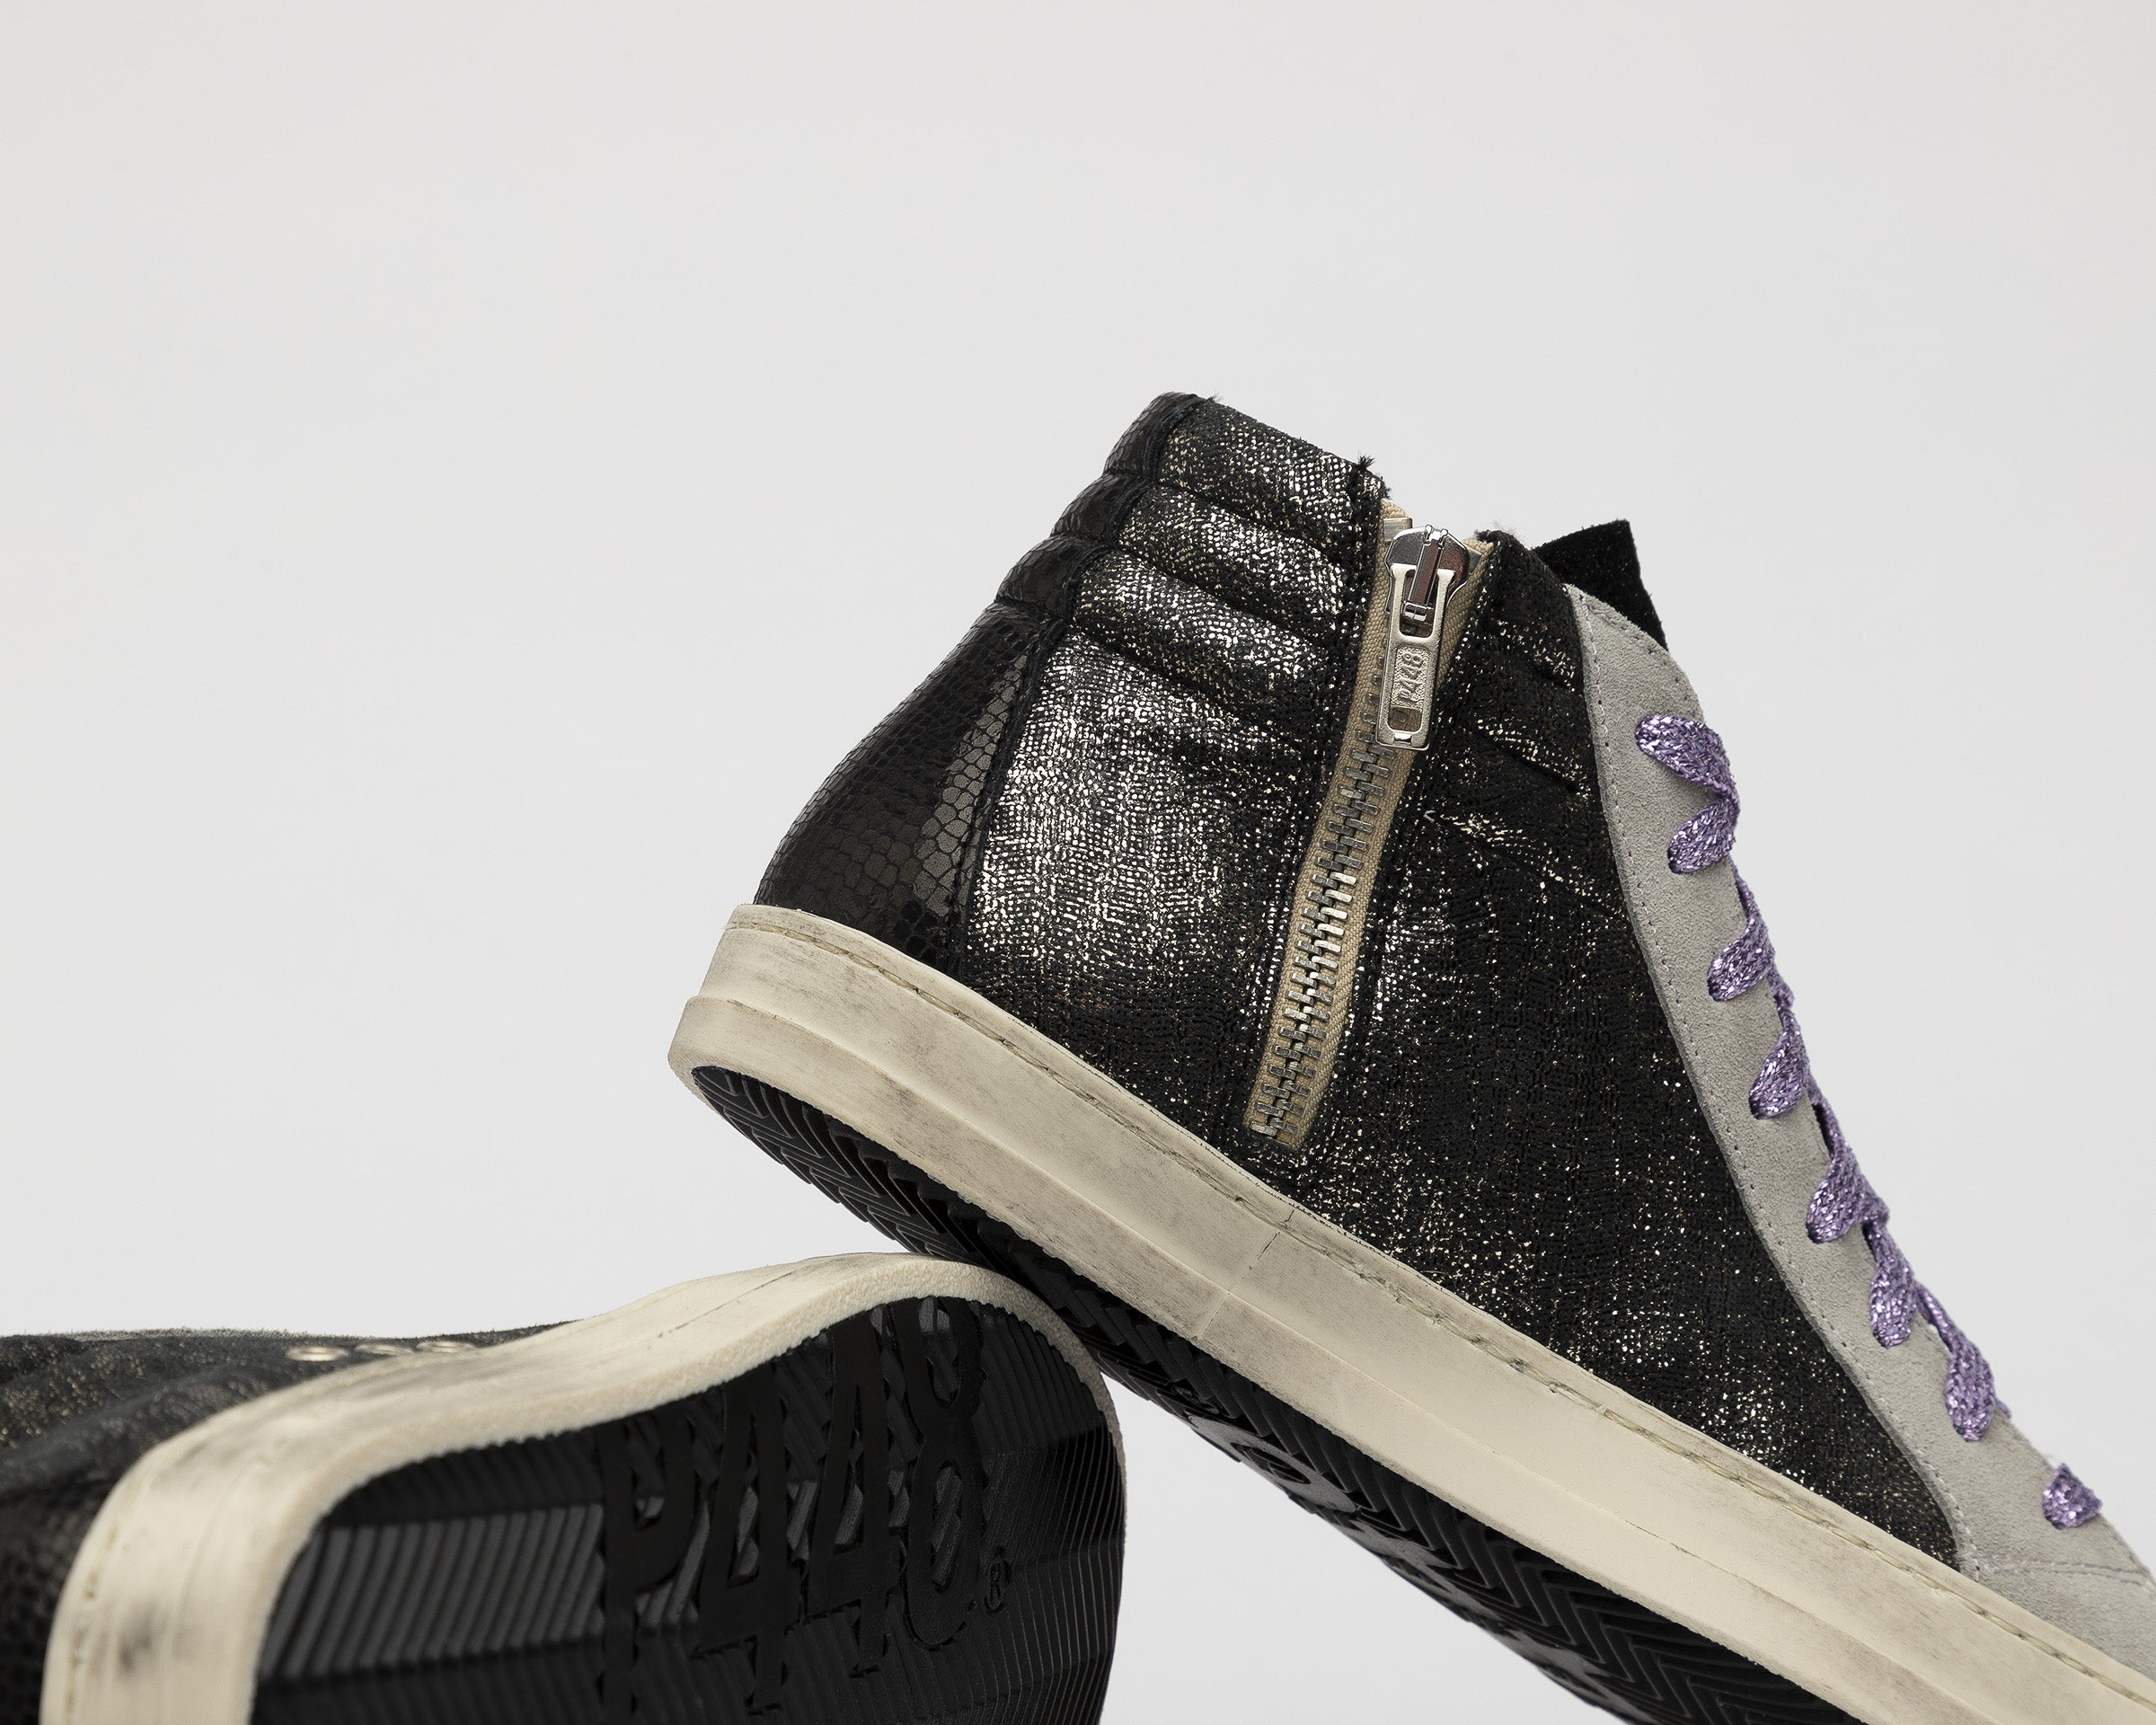 Skate High-Top Sneaker in Black/Loft - Detail 1